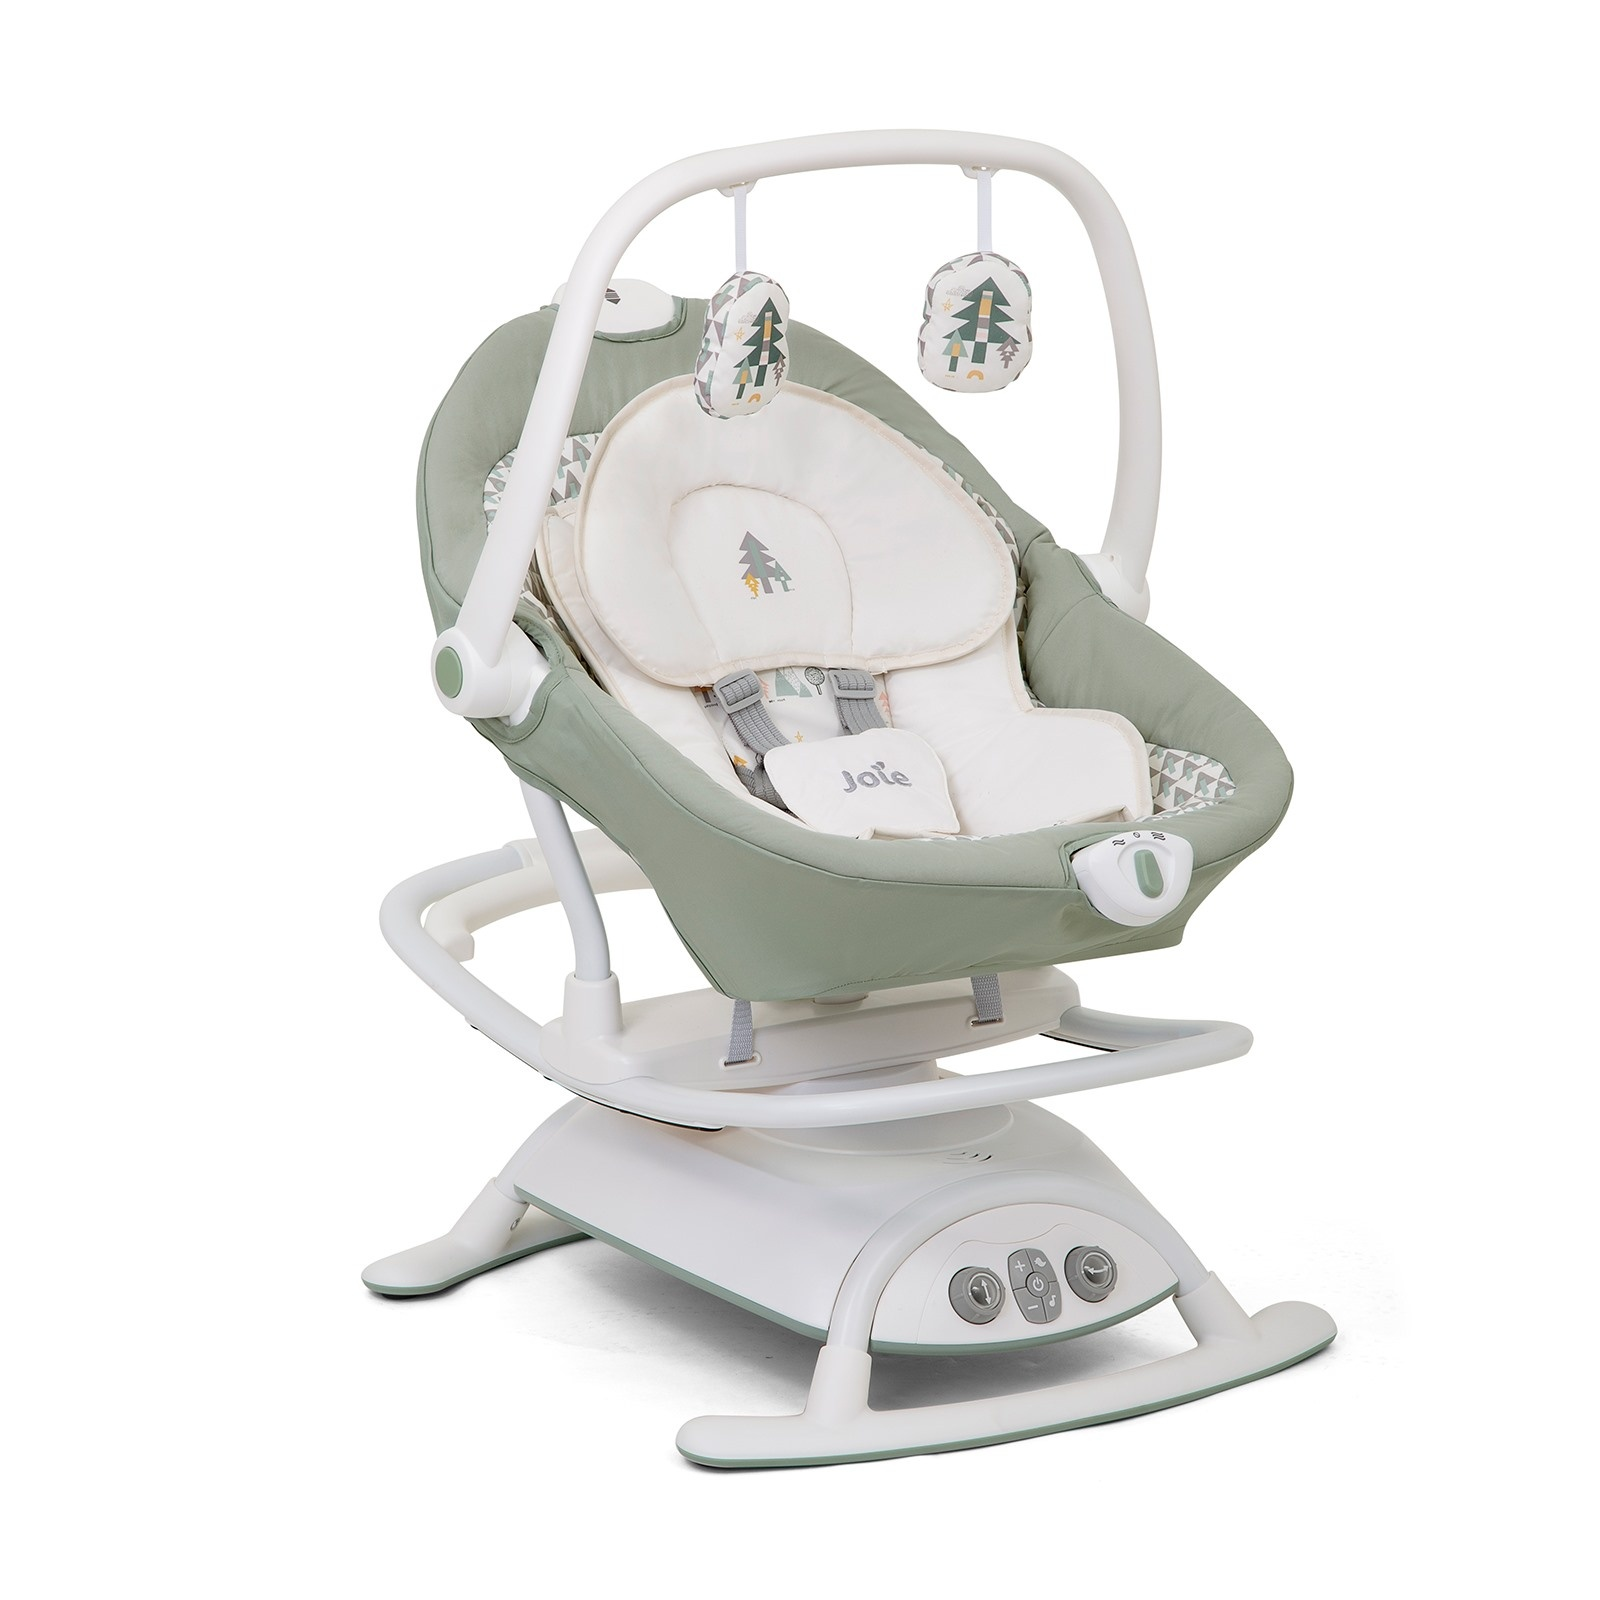 Ebebek Joie Sansa Home Type Baby Bouncer Automatic Swing